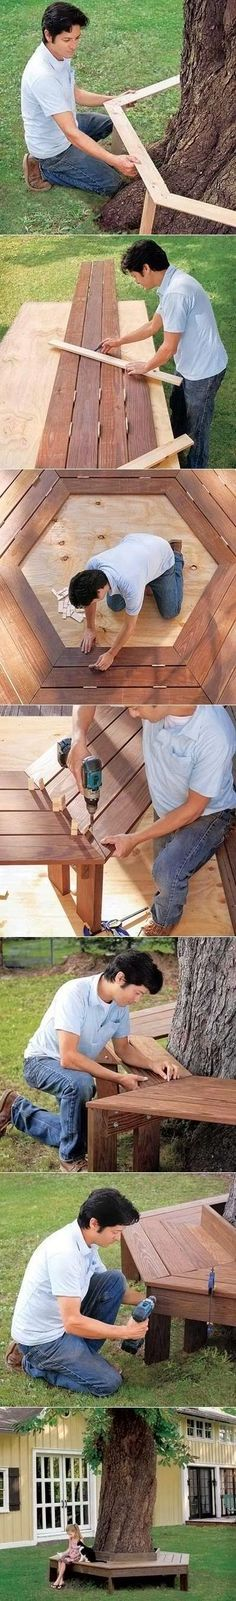 DIY How To Build A Bench Around A Tree - Adventure Ideaz